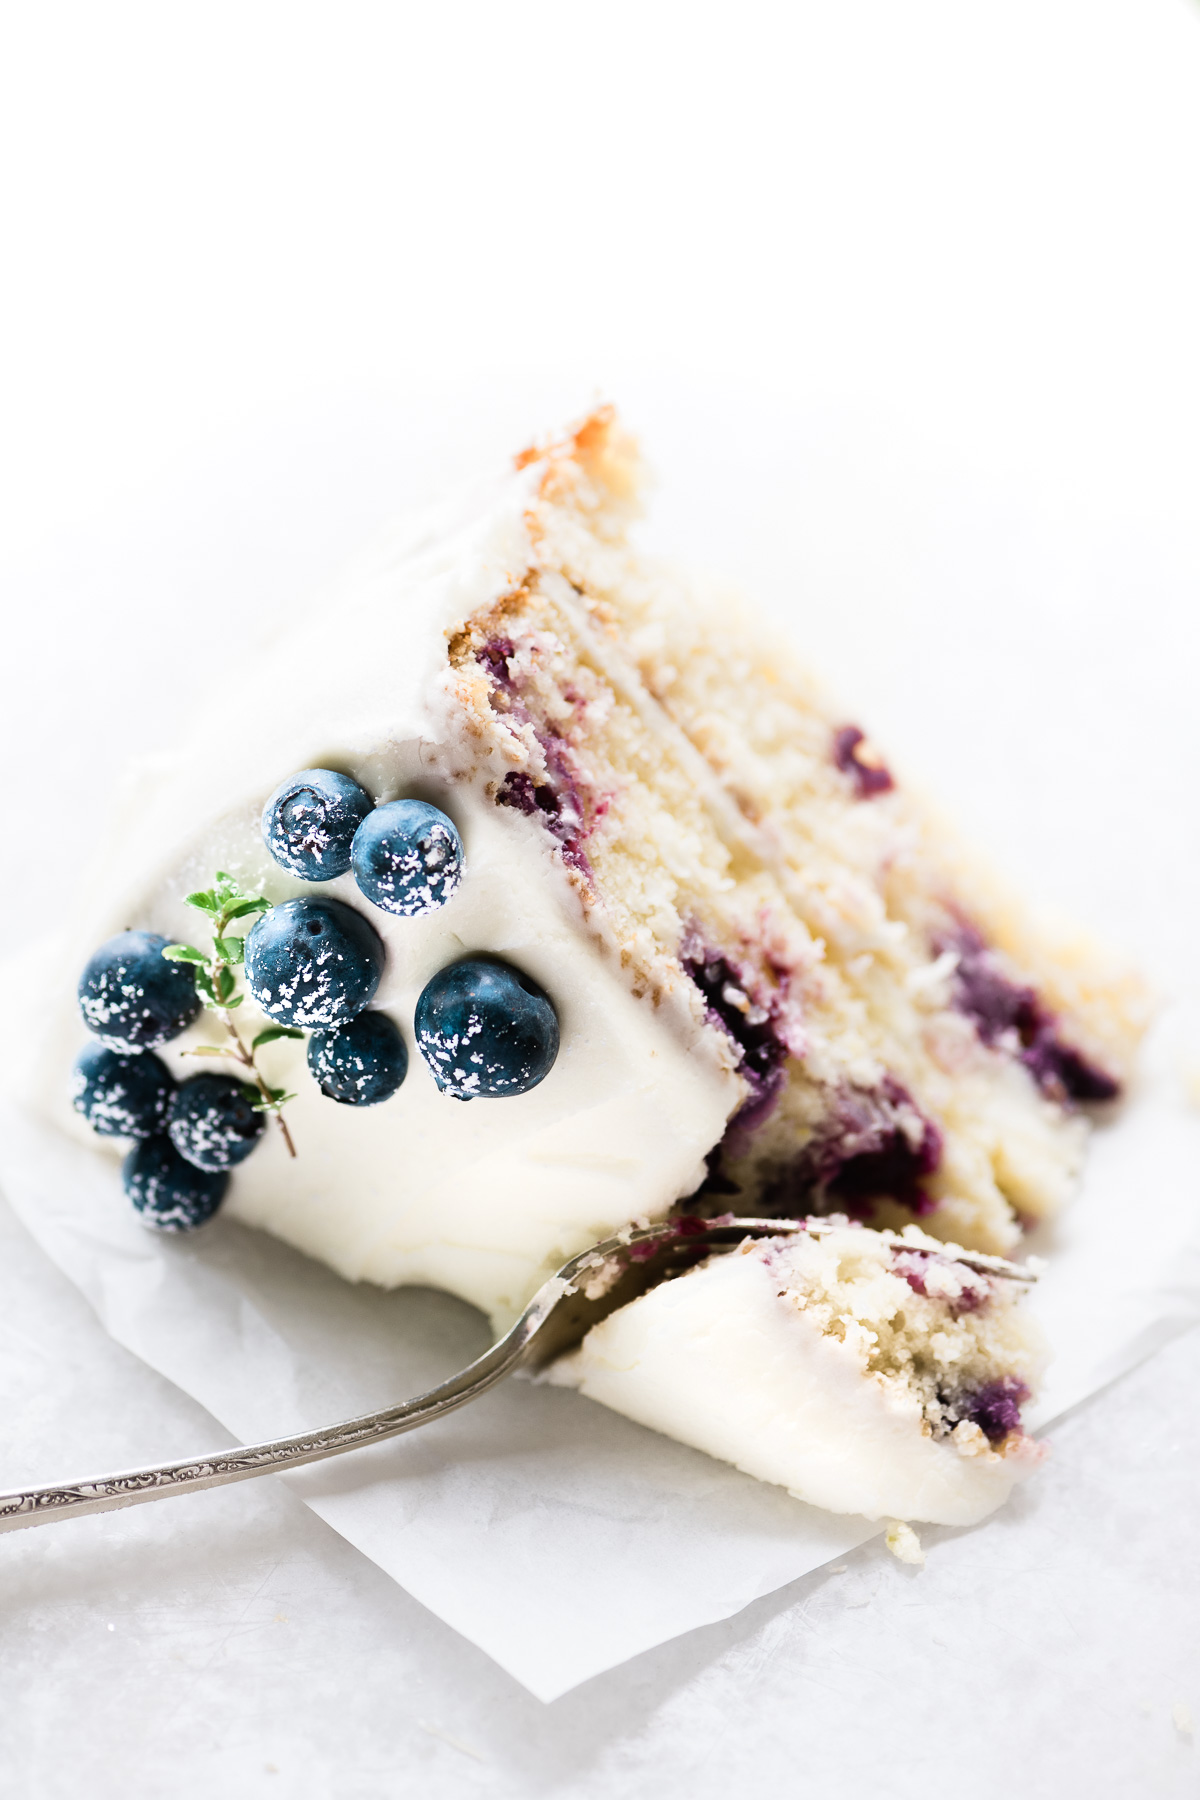 a slice of blueberry lemon layer cake